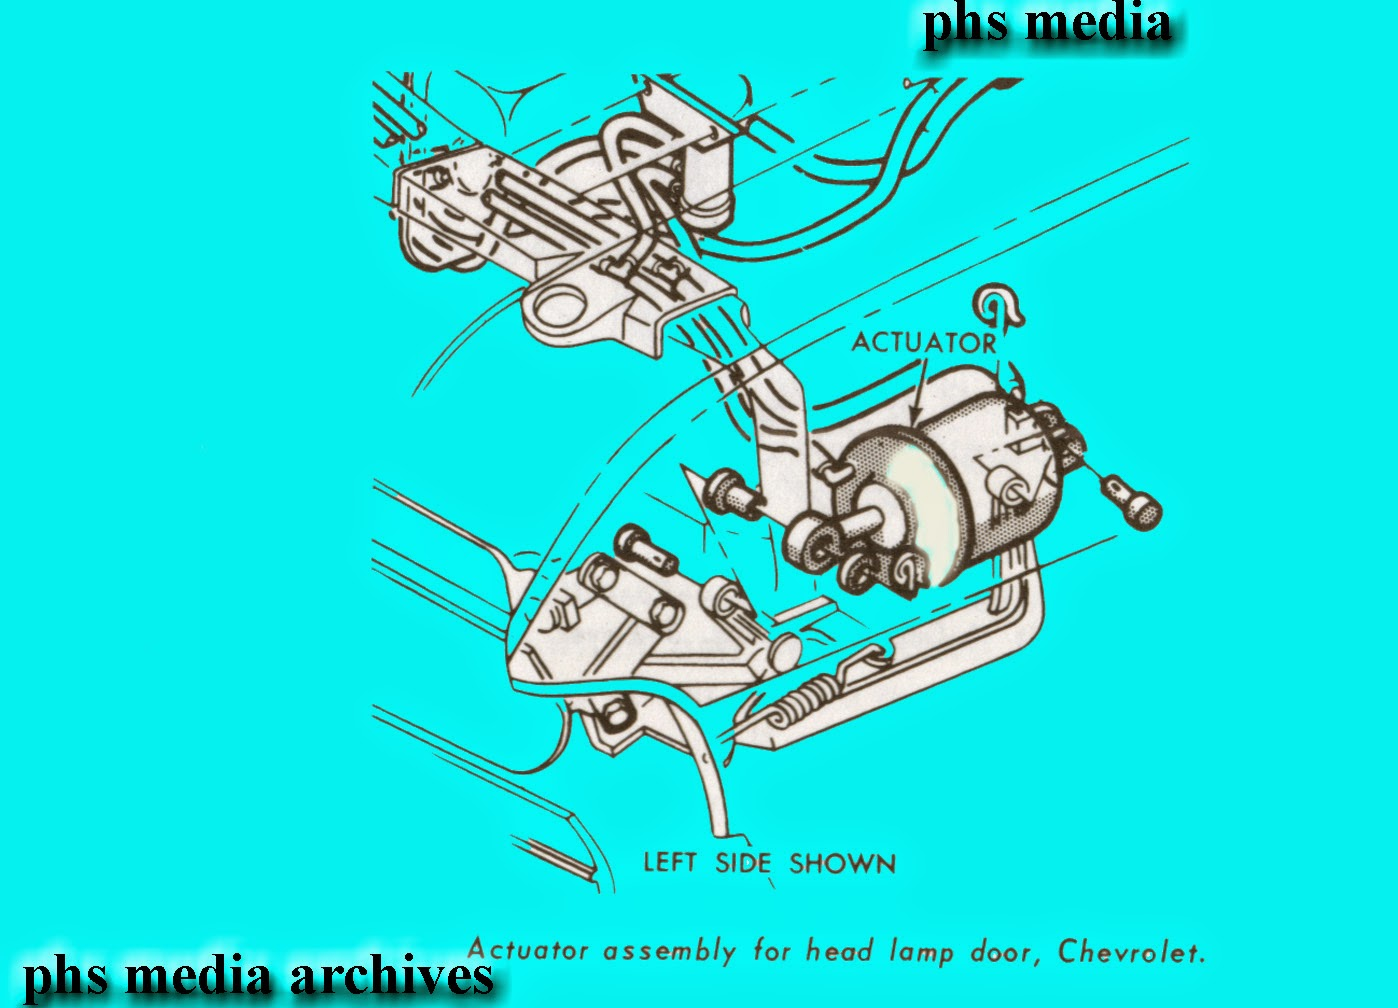 1968 Chevelle Vacuum Diagram Pontiac Tech Files Chevrolet Hidden Headlamp Door System Caprice Impala Blogspot Com Headlight Bulb Chevy